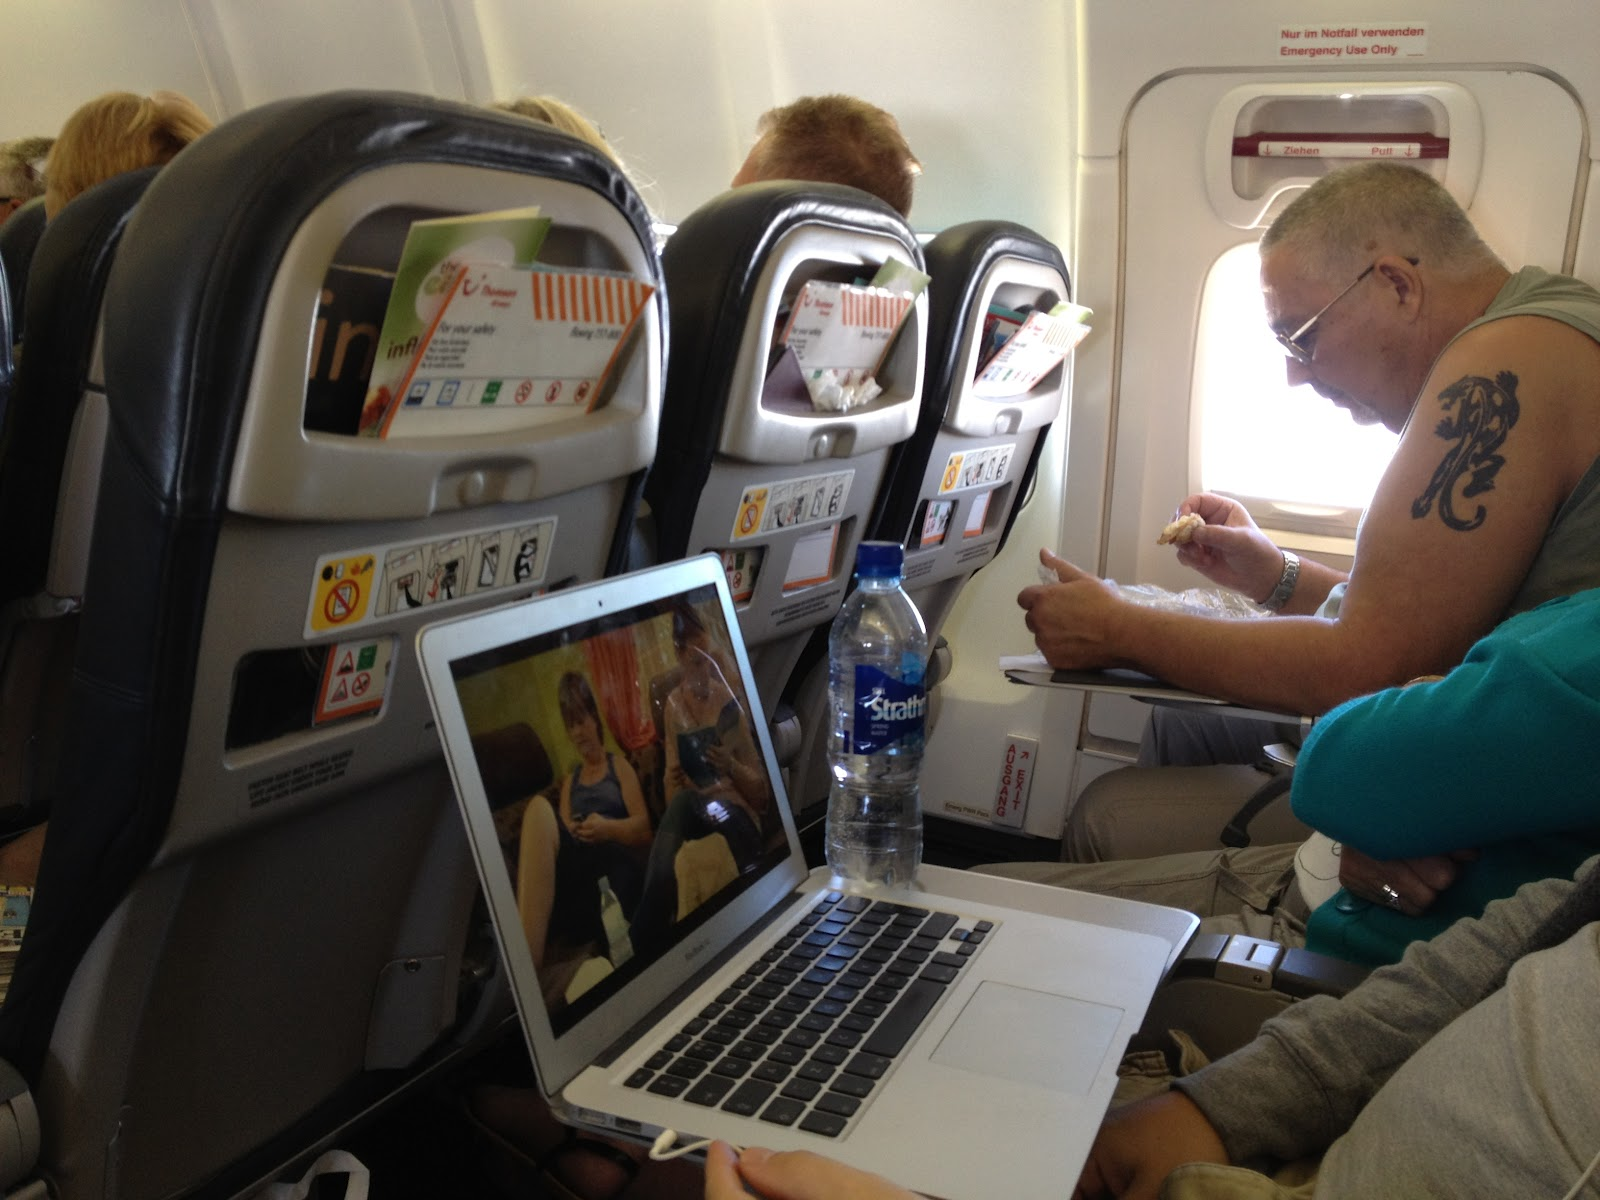 Thomson Airlines Charter Airline That Is As Good As Scheduled Ones